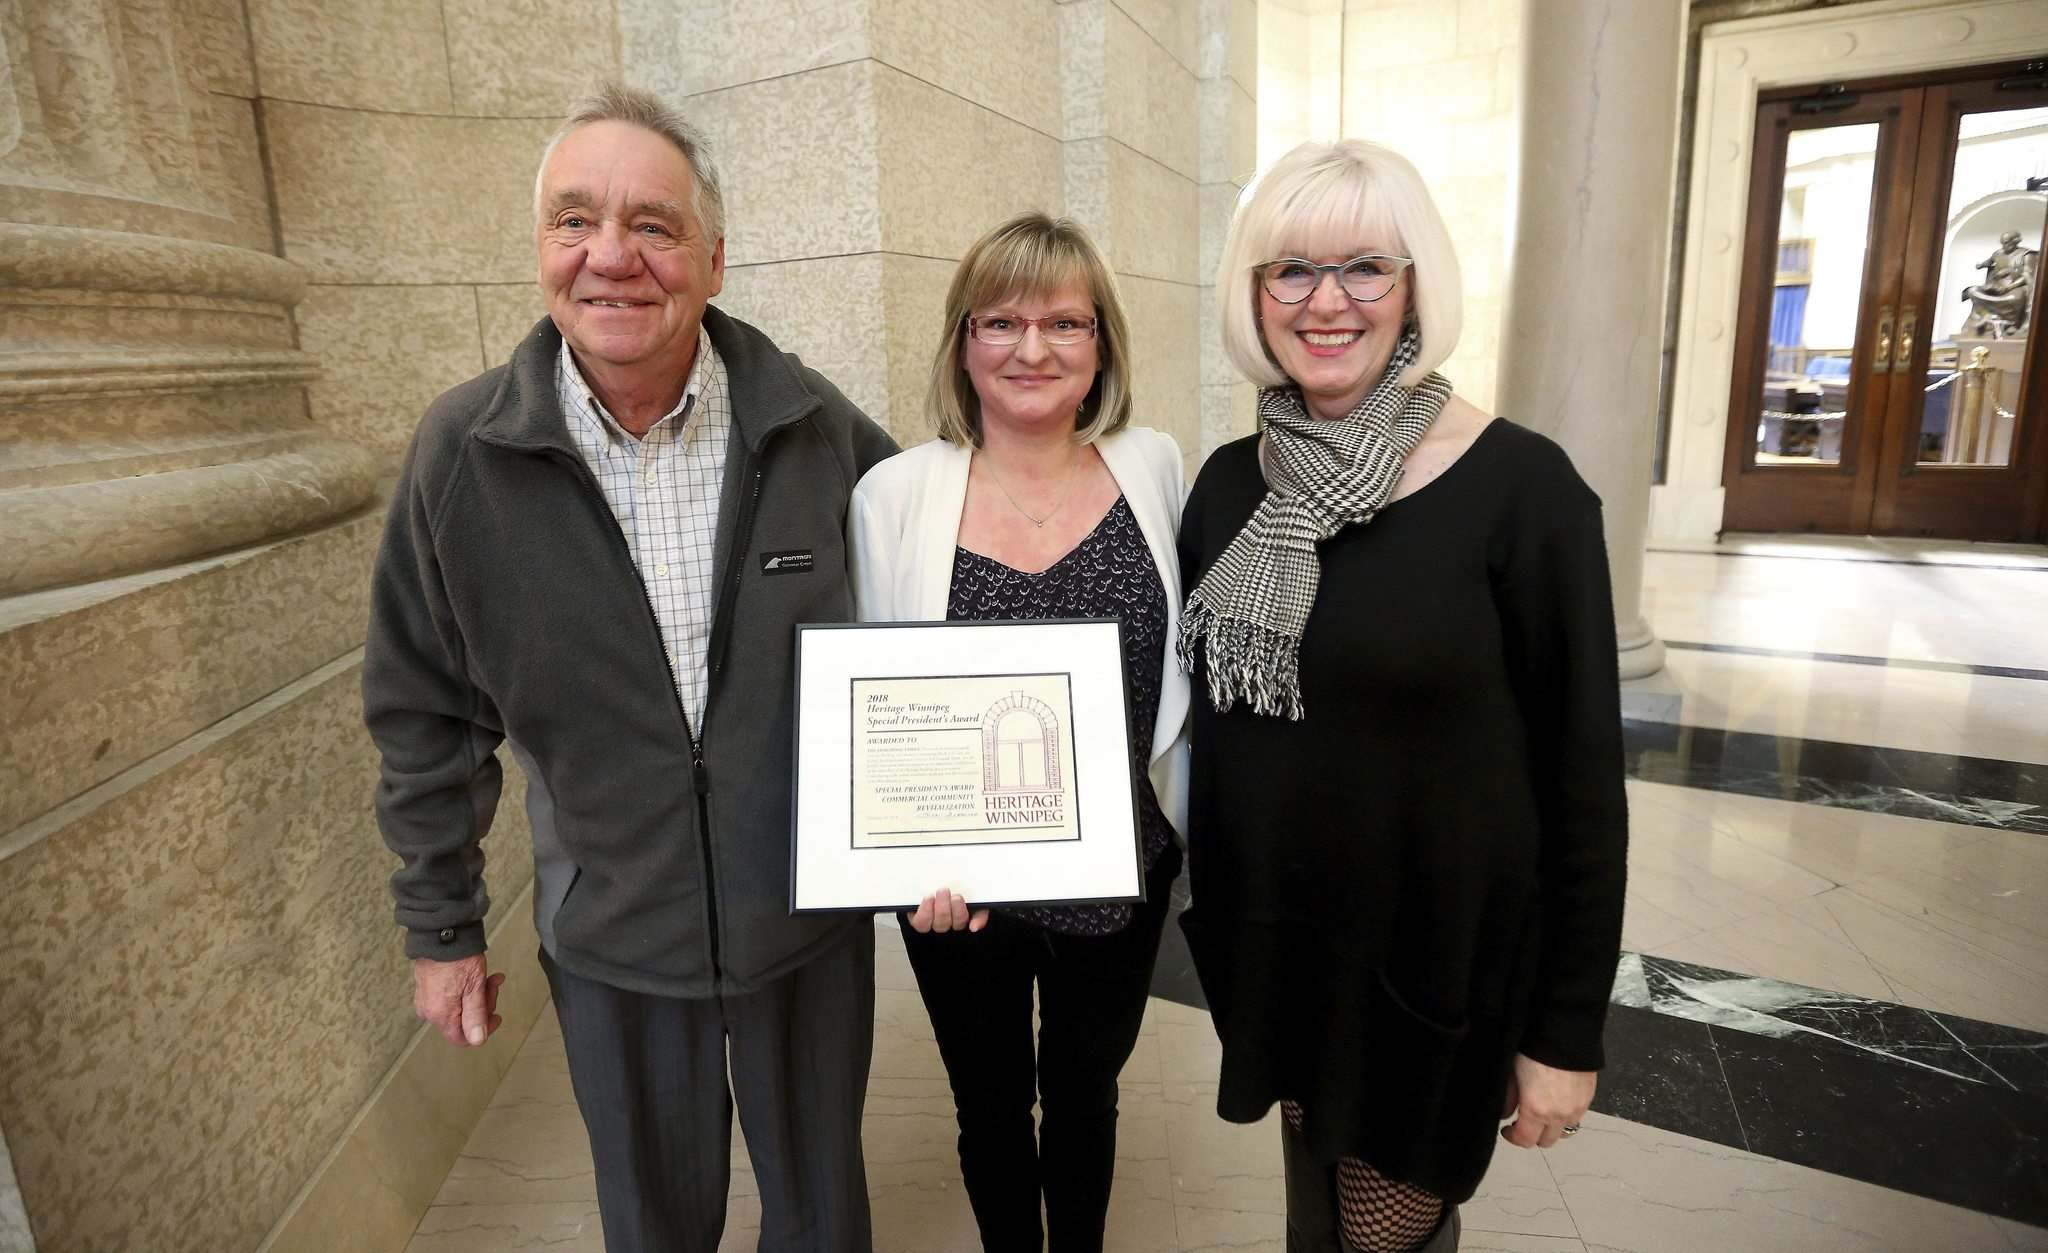 Shelley Armstrong, middle, with her father, George, left, was recognized for the family's work on the Langside Grocery by Lisa Gardewine, Heritage Winnipeg President. (Trevor Hagan / Winnipeg Free Press)</p>